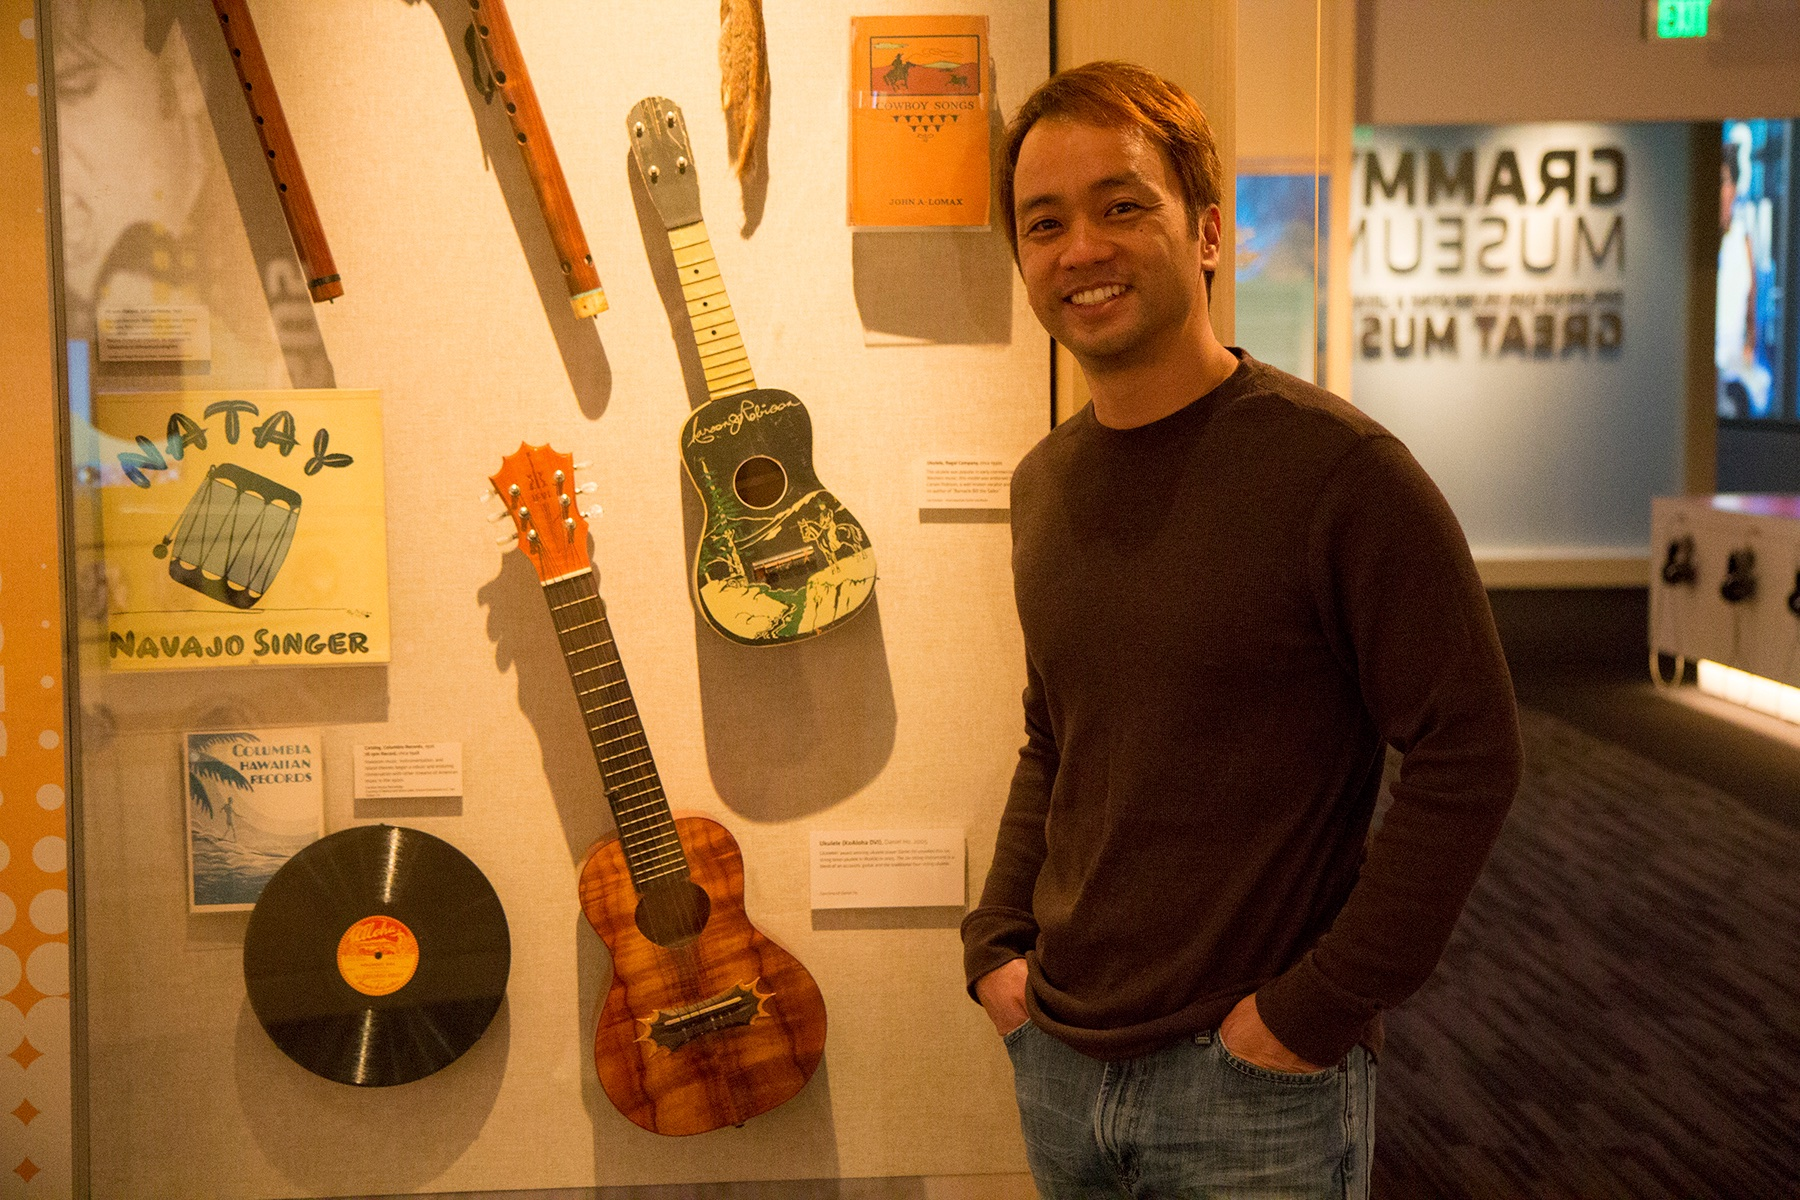 Daniel with his 'ukulele on display at The Grammy Museum